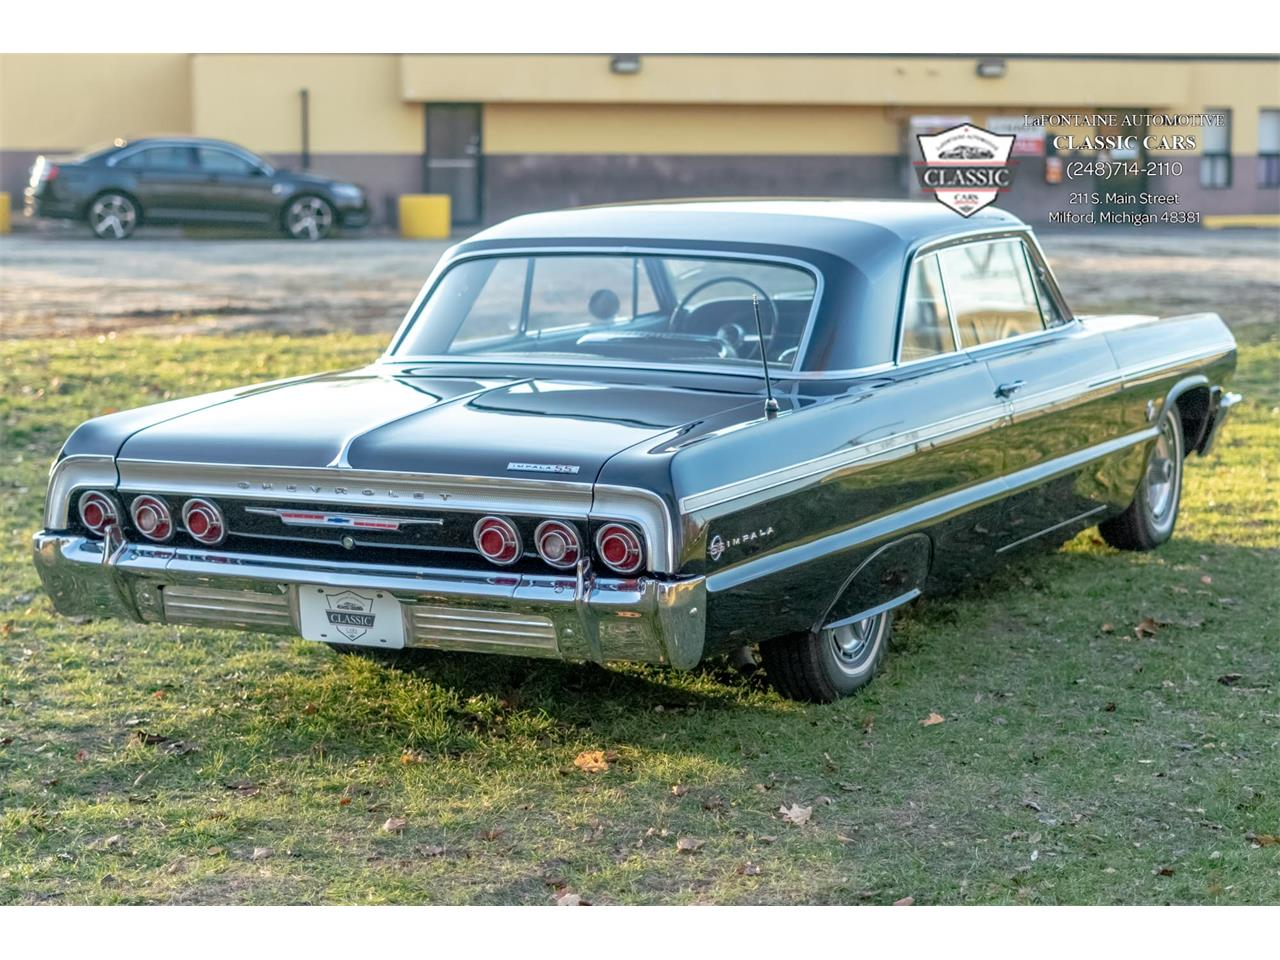 1964 Chevrolet Impala SS (CC-1415937) for sale in Milford, Michigan